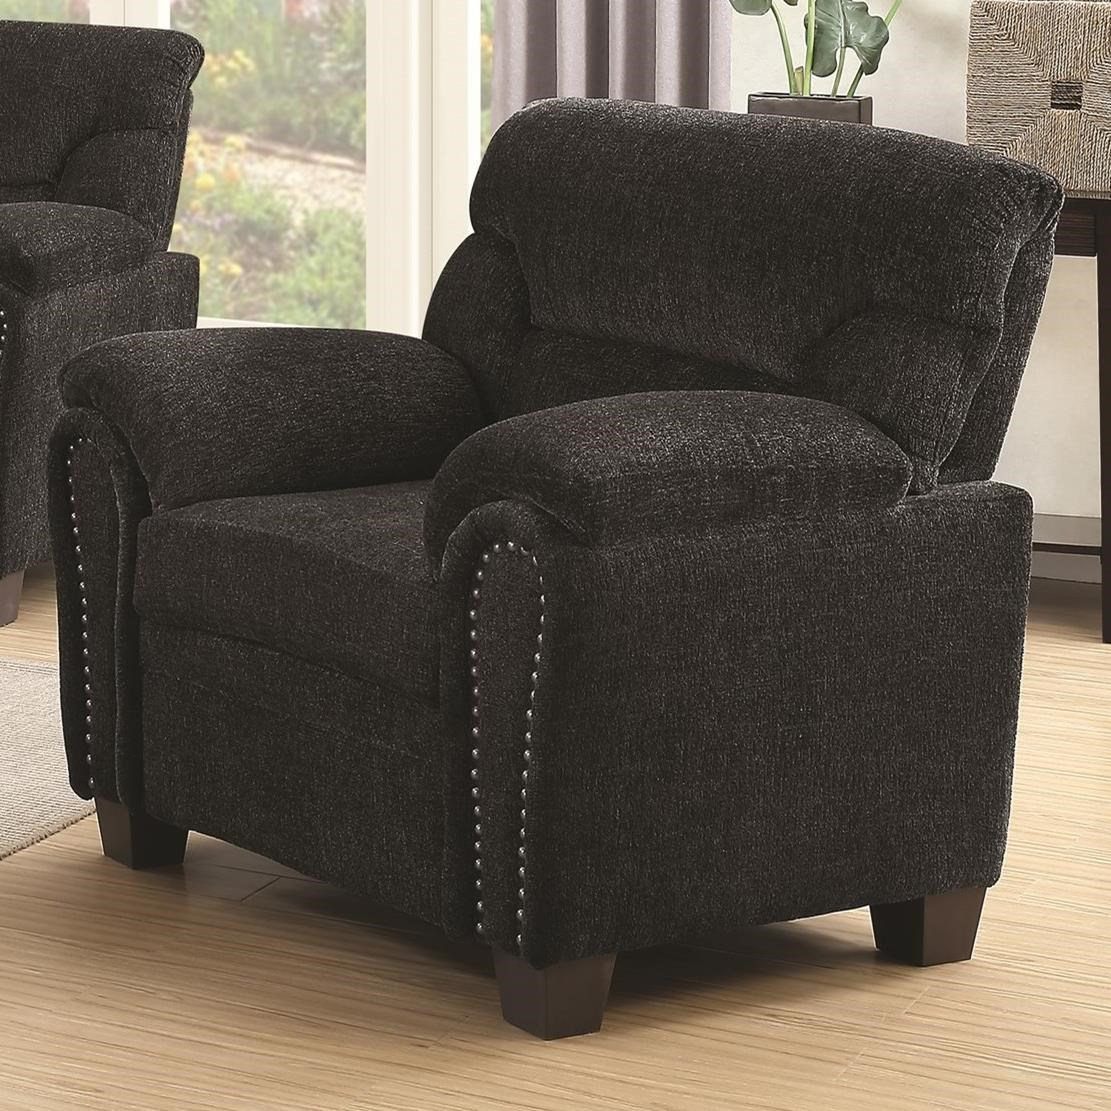 Clemintine by Coaster Chair by Coaster at Standard Furniture